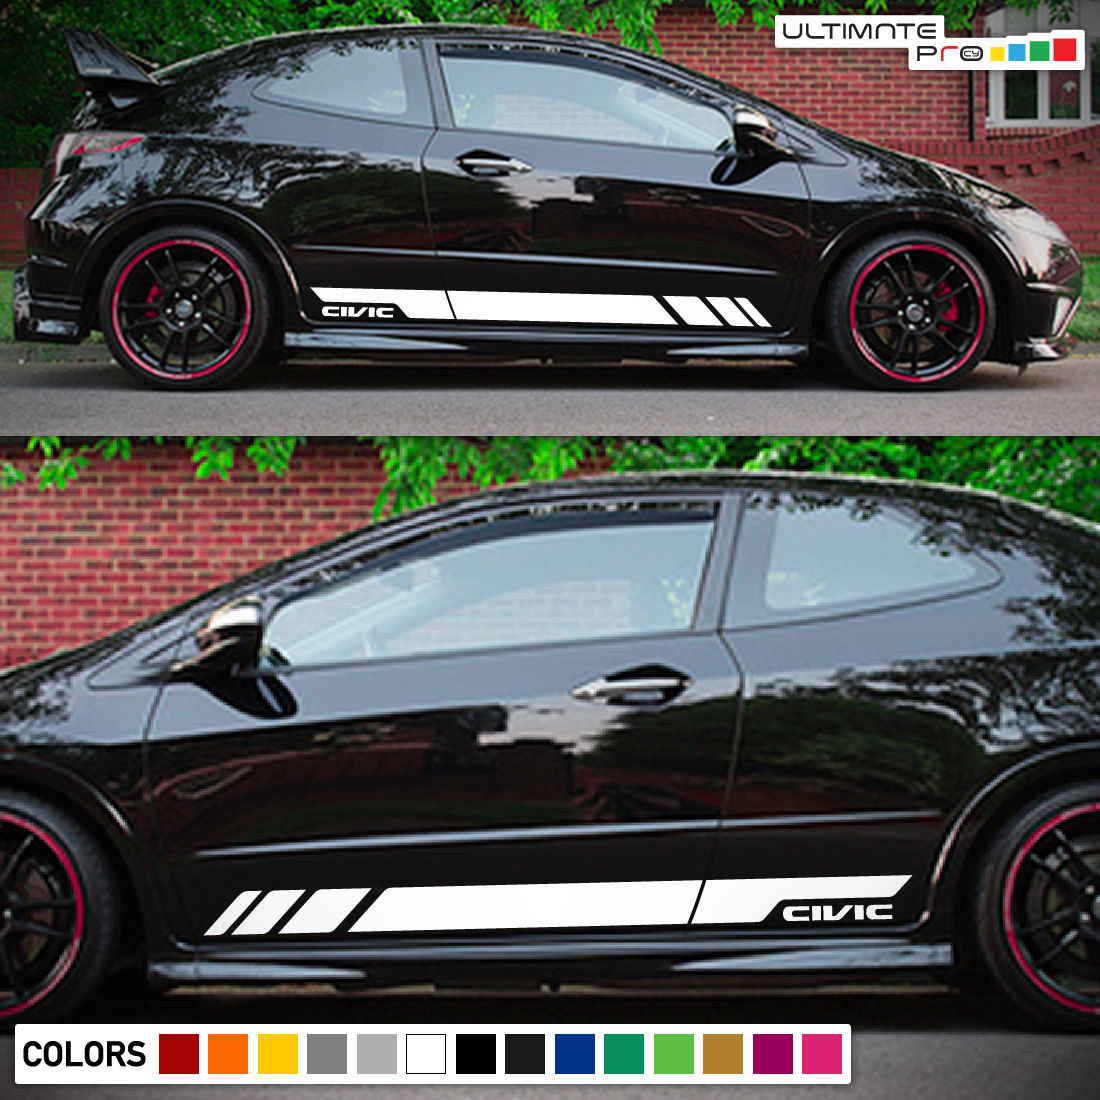 Sticker Decal Vinyl Side Door Stripes for Honda Civic FN2 2006 - 2011 Sport Wing Type R ...